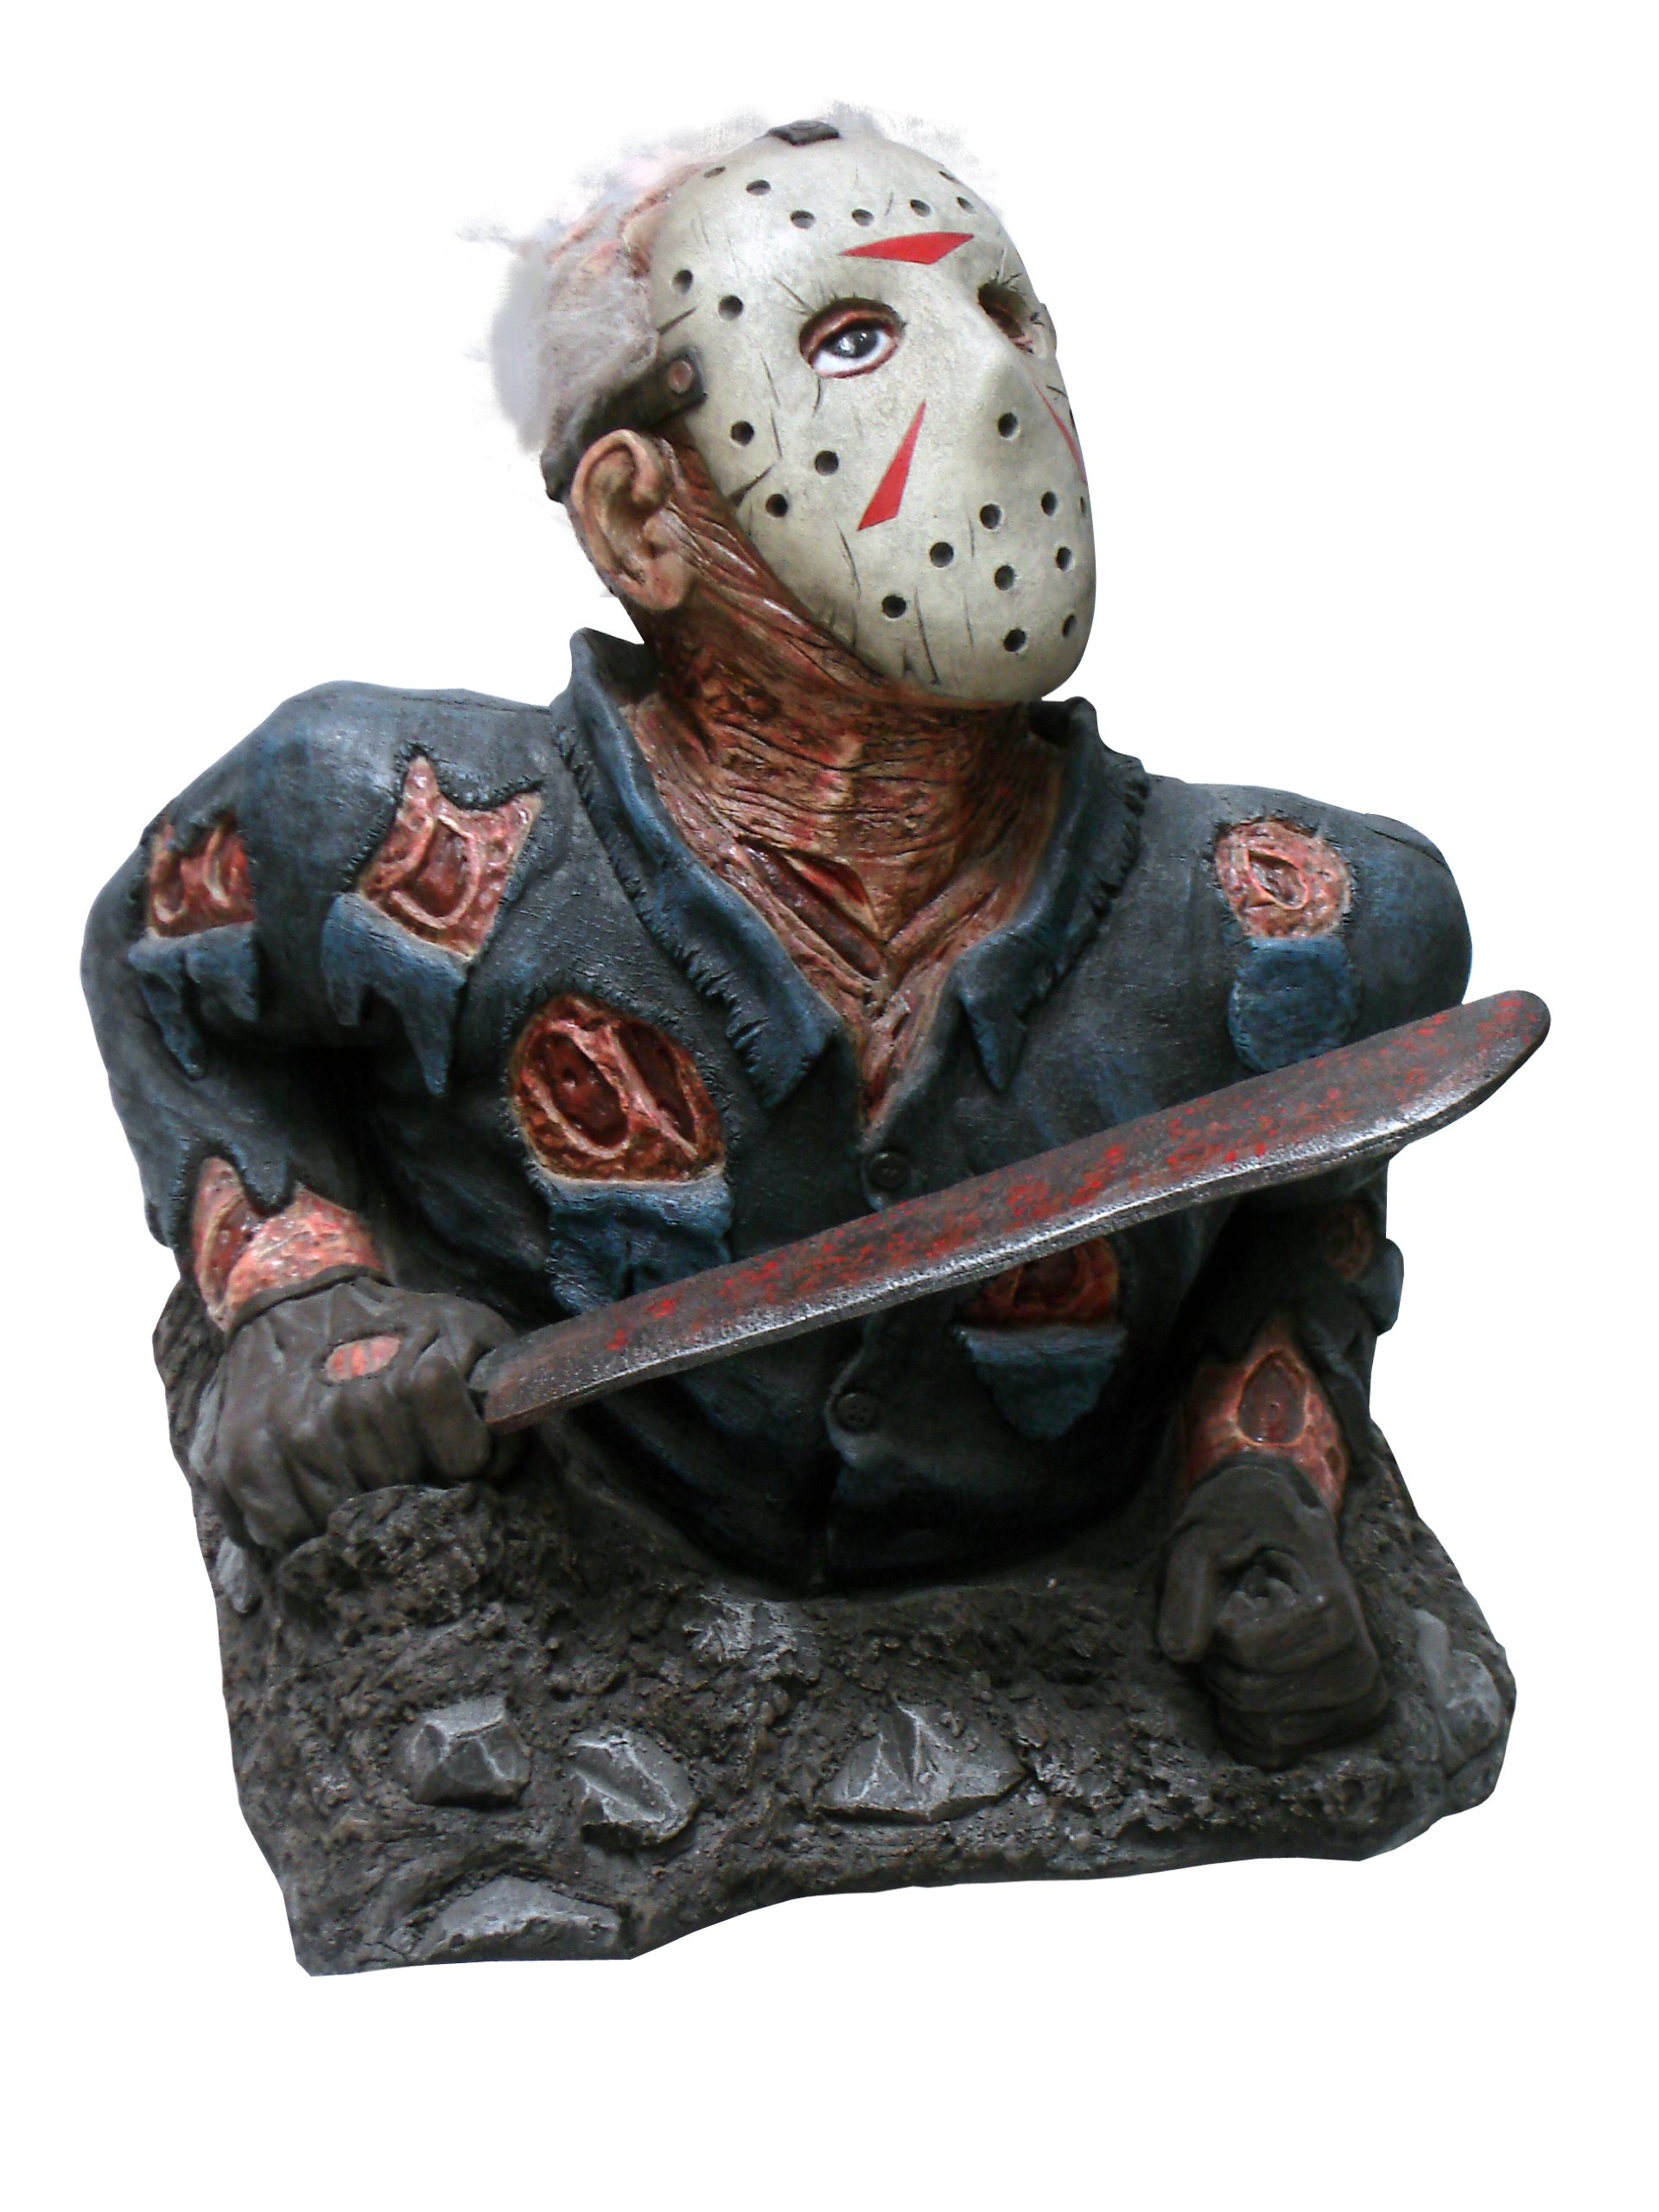 Friday The 13th Jason Voorhees Ground Breaker Party Decoration by Rubie's